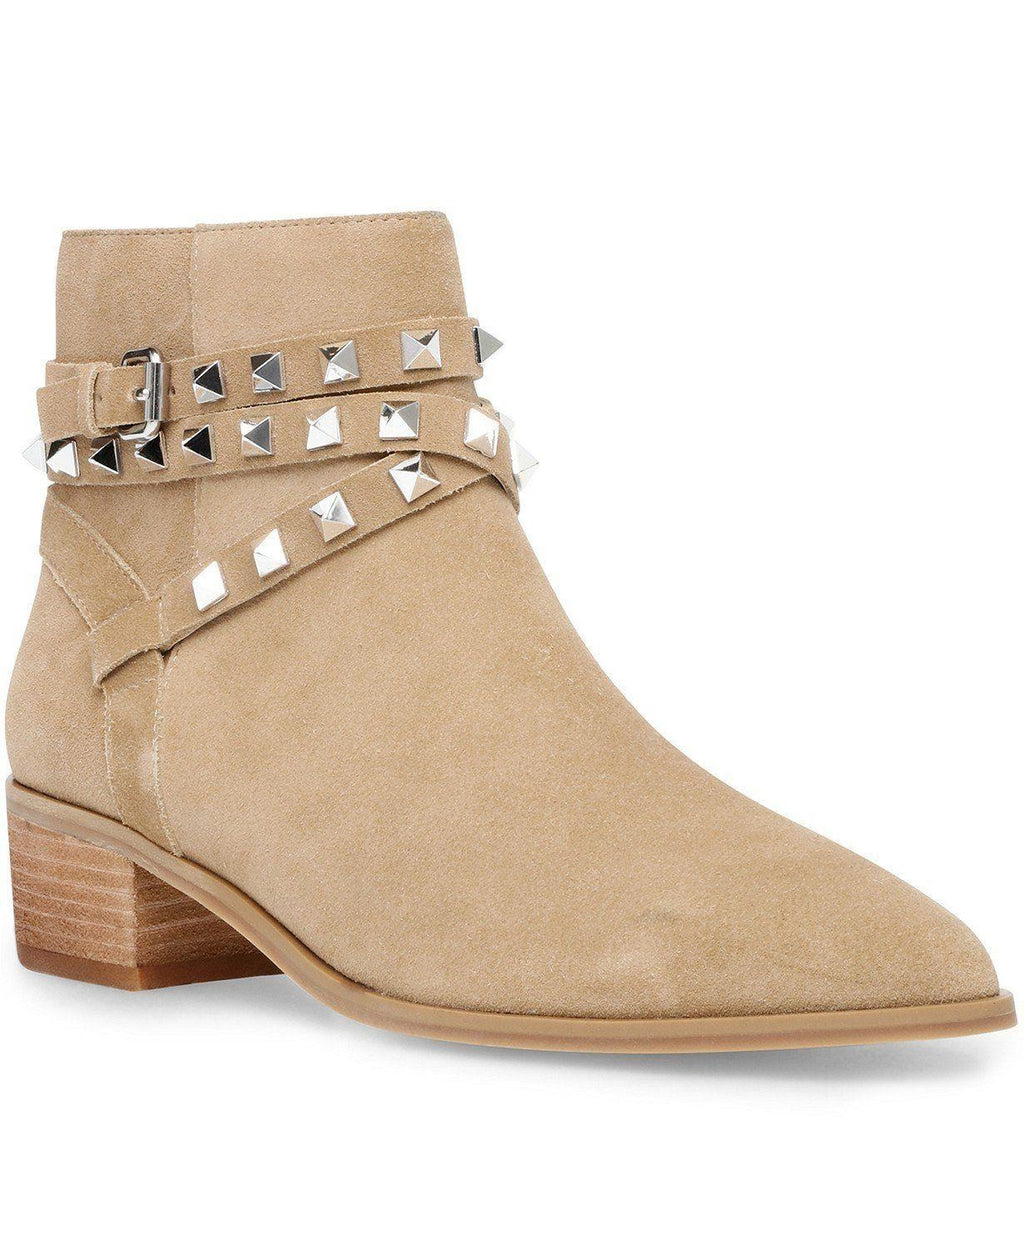 Steve Madden Besto Suede Ankle Boots New 8M or 9M,your-fashions-for-less,Steve Madden,Boots.